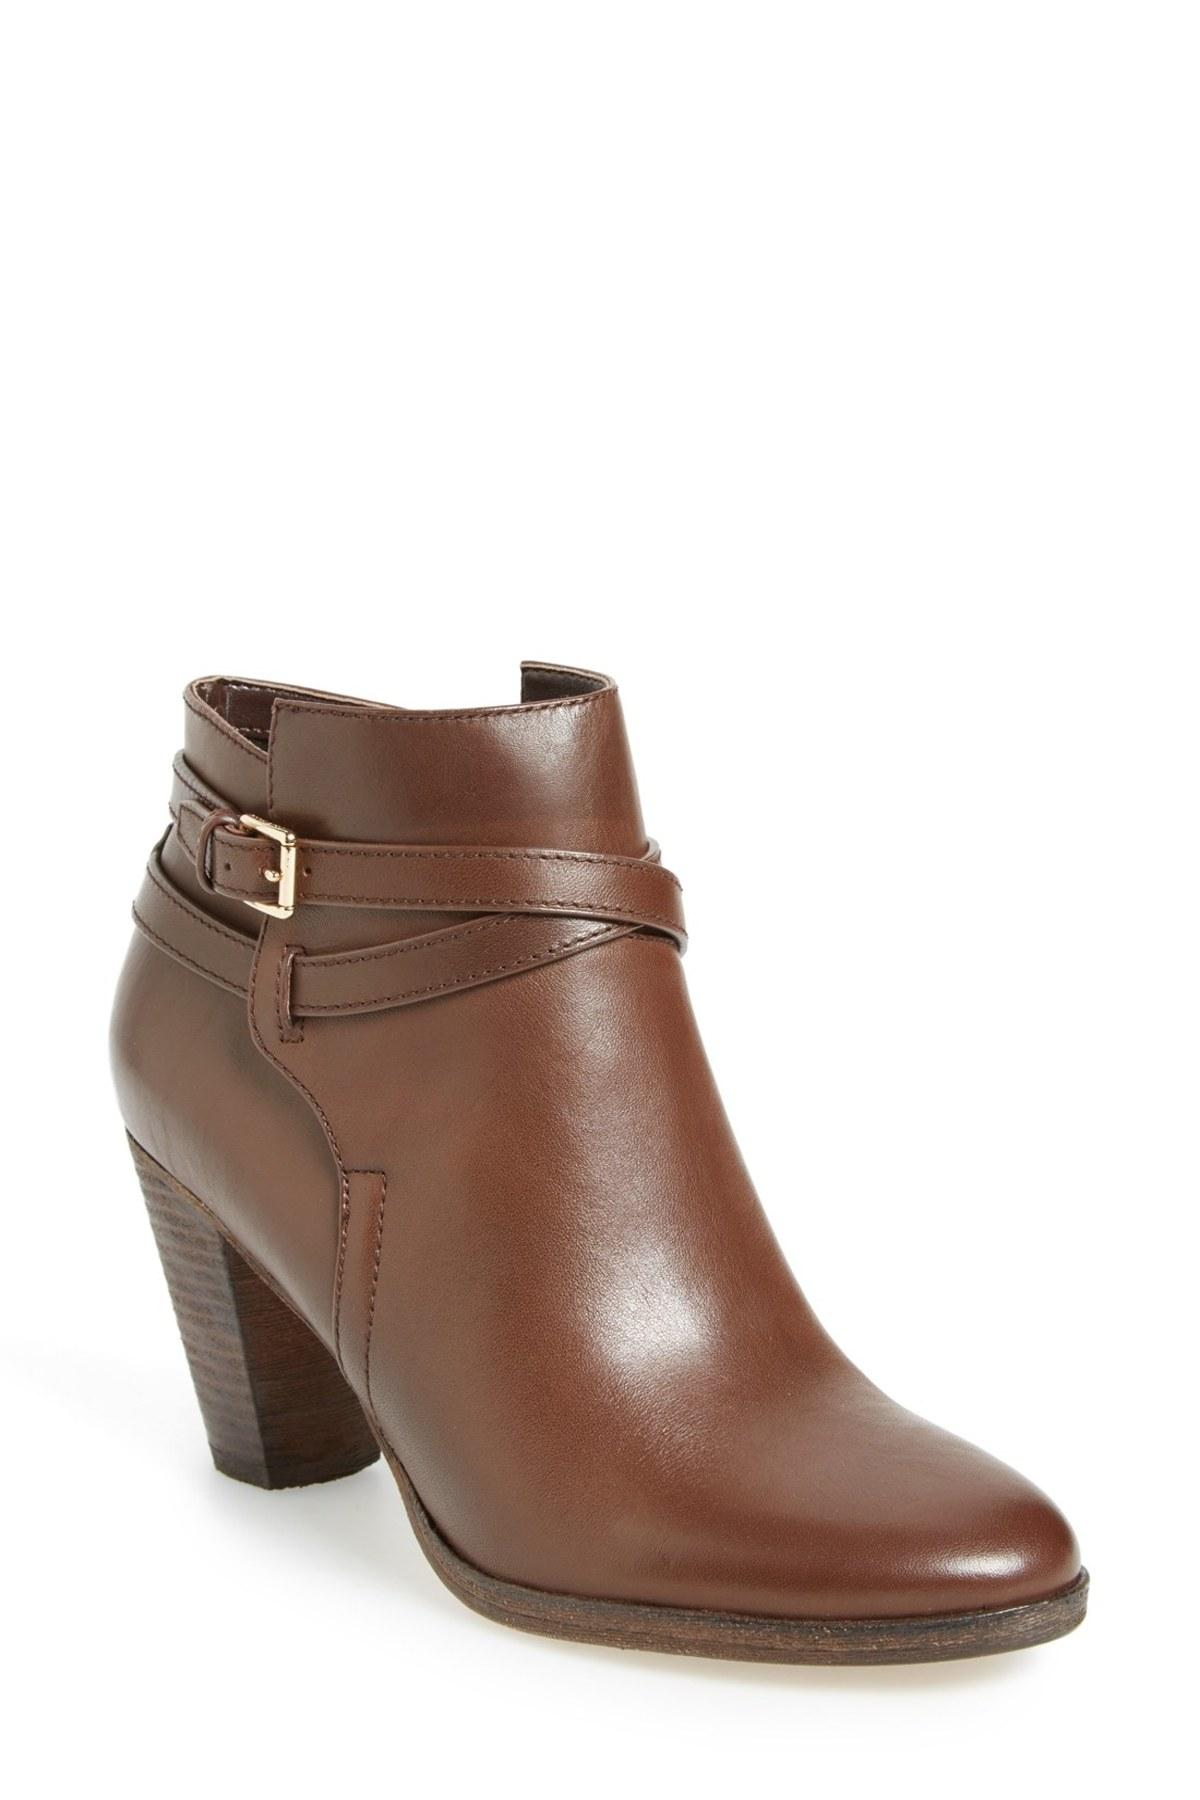 Womens Comfort Shoes At Nordstrom